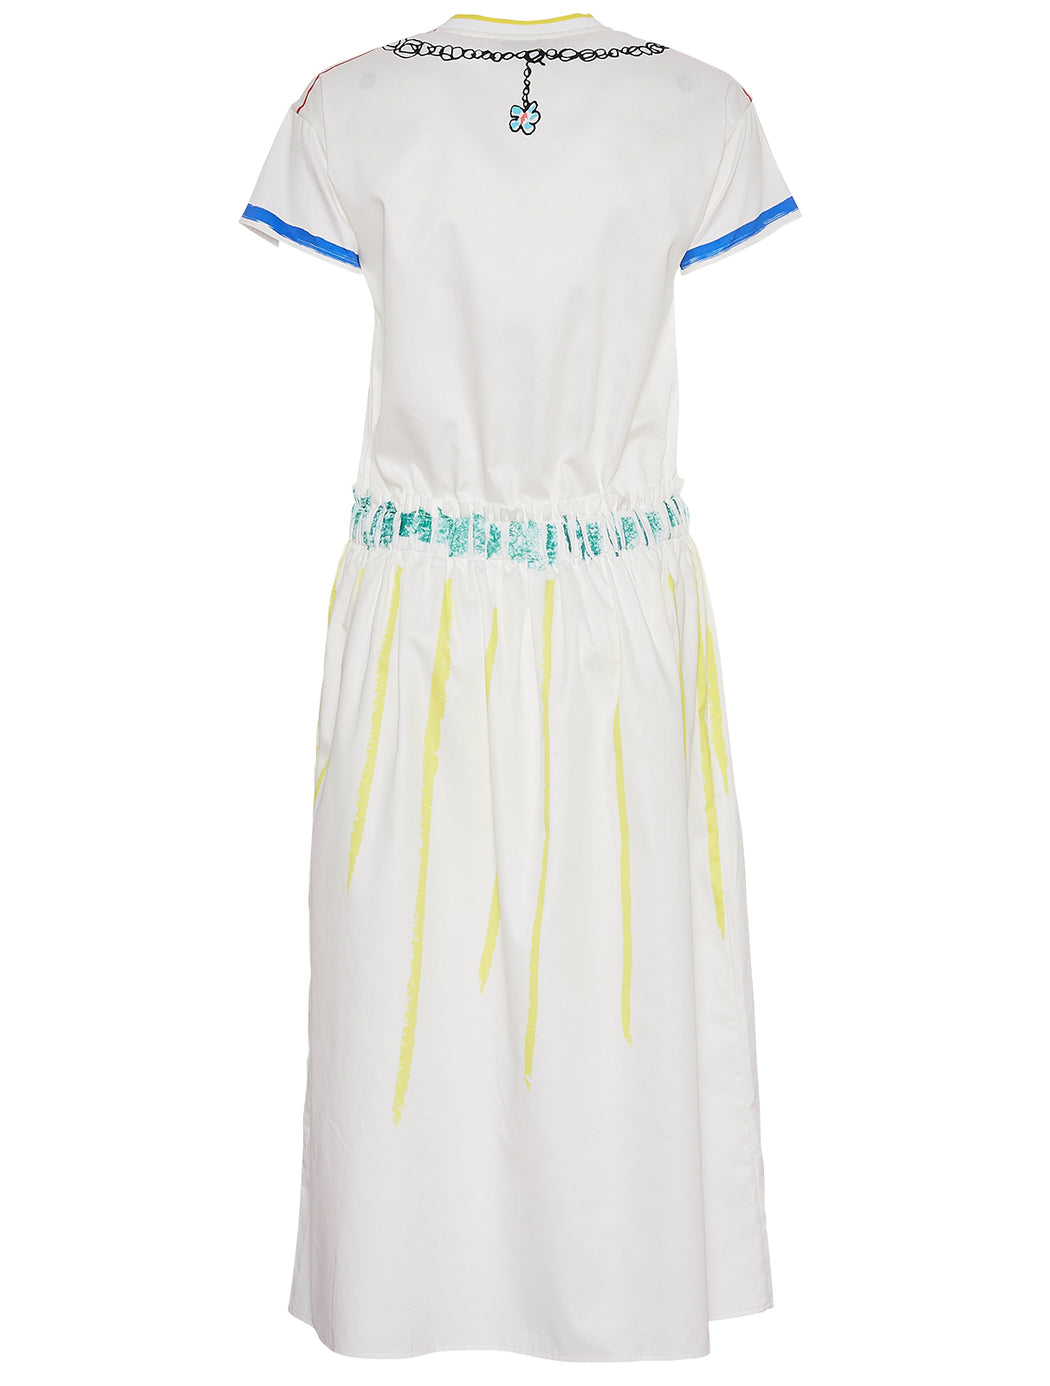 Trompe L'oeil Scribble Dress